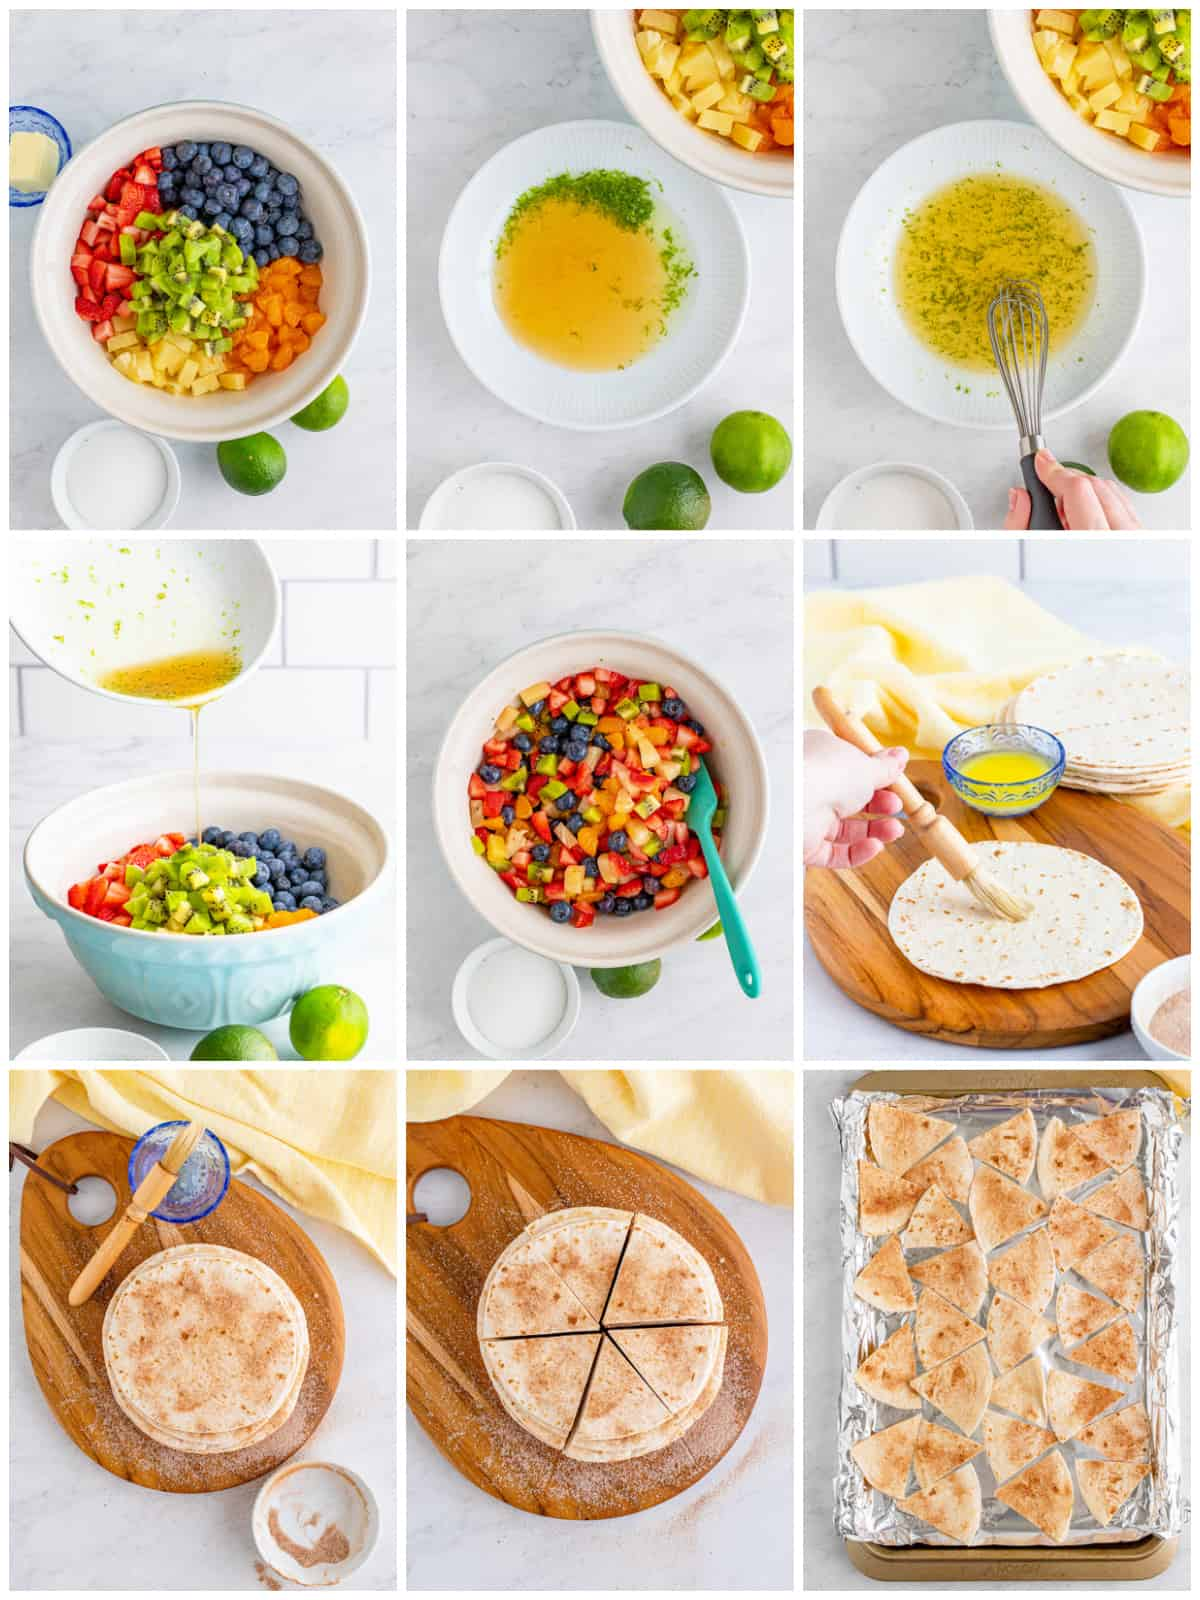 Step by step photos on how to make Fruit Salsa